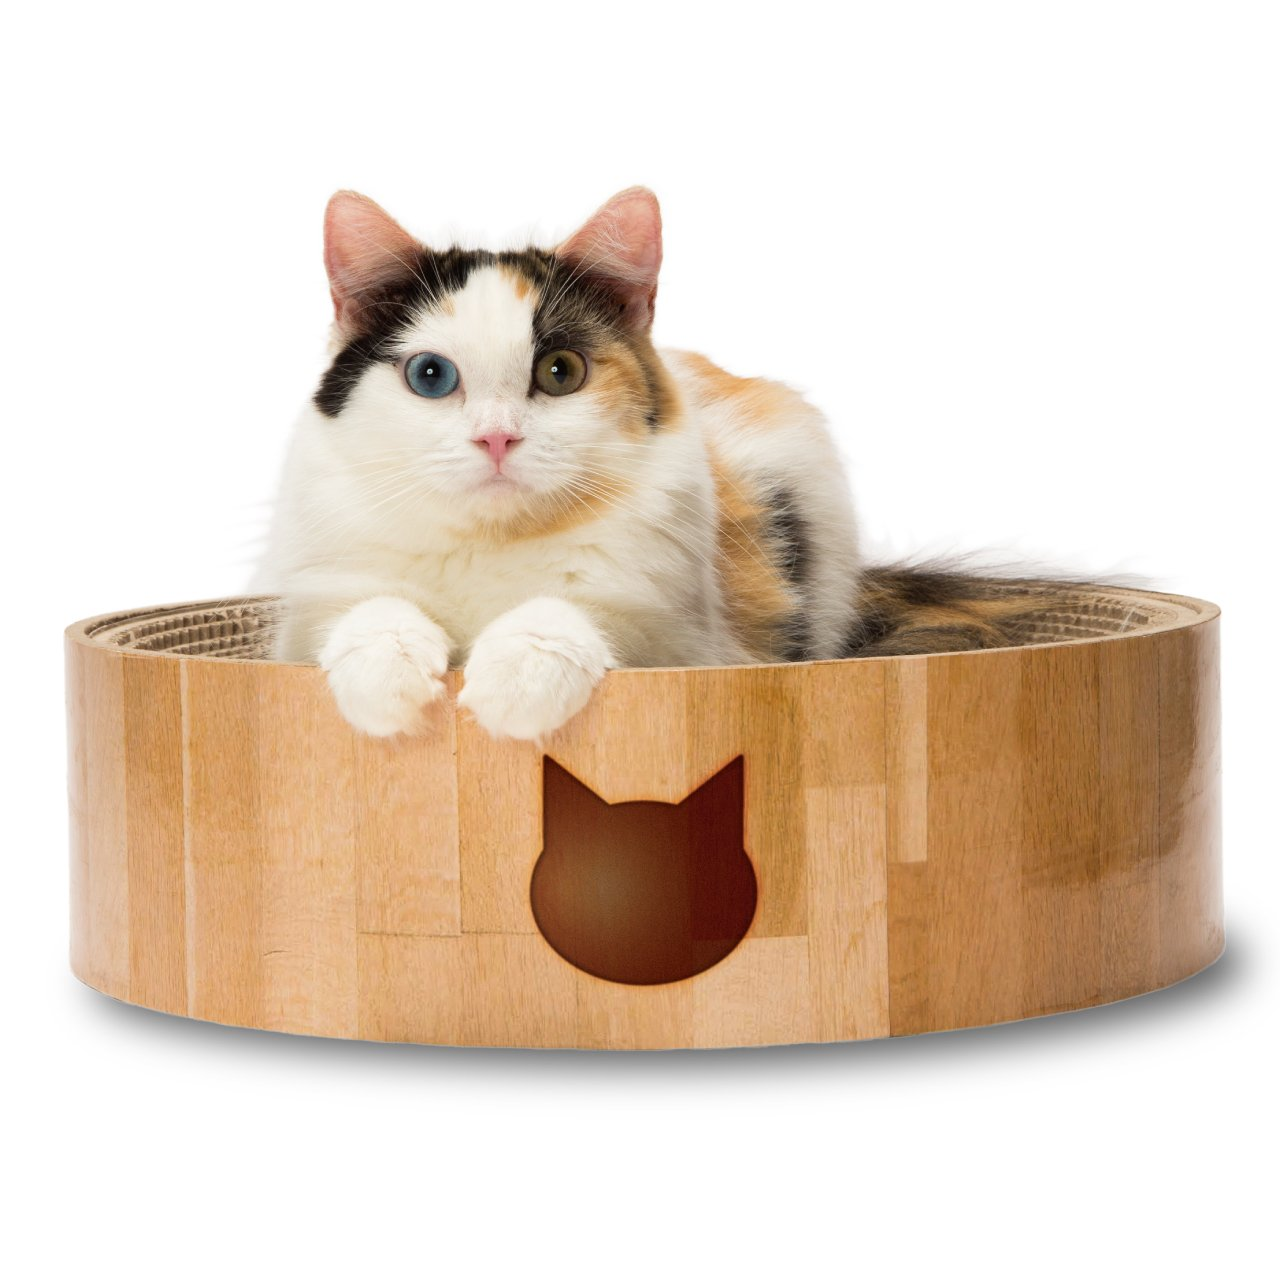 Necoichi Cozy Cat Scratcher Bowl (Cat) by Necoichi